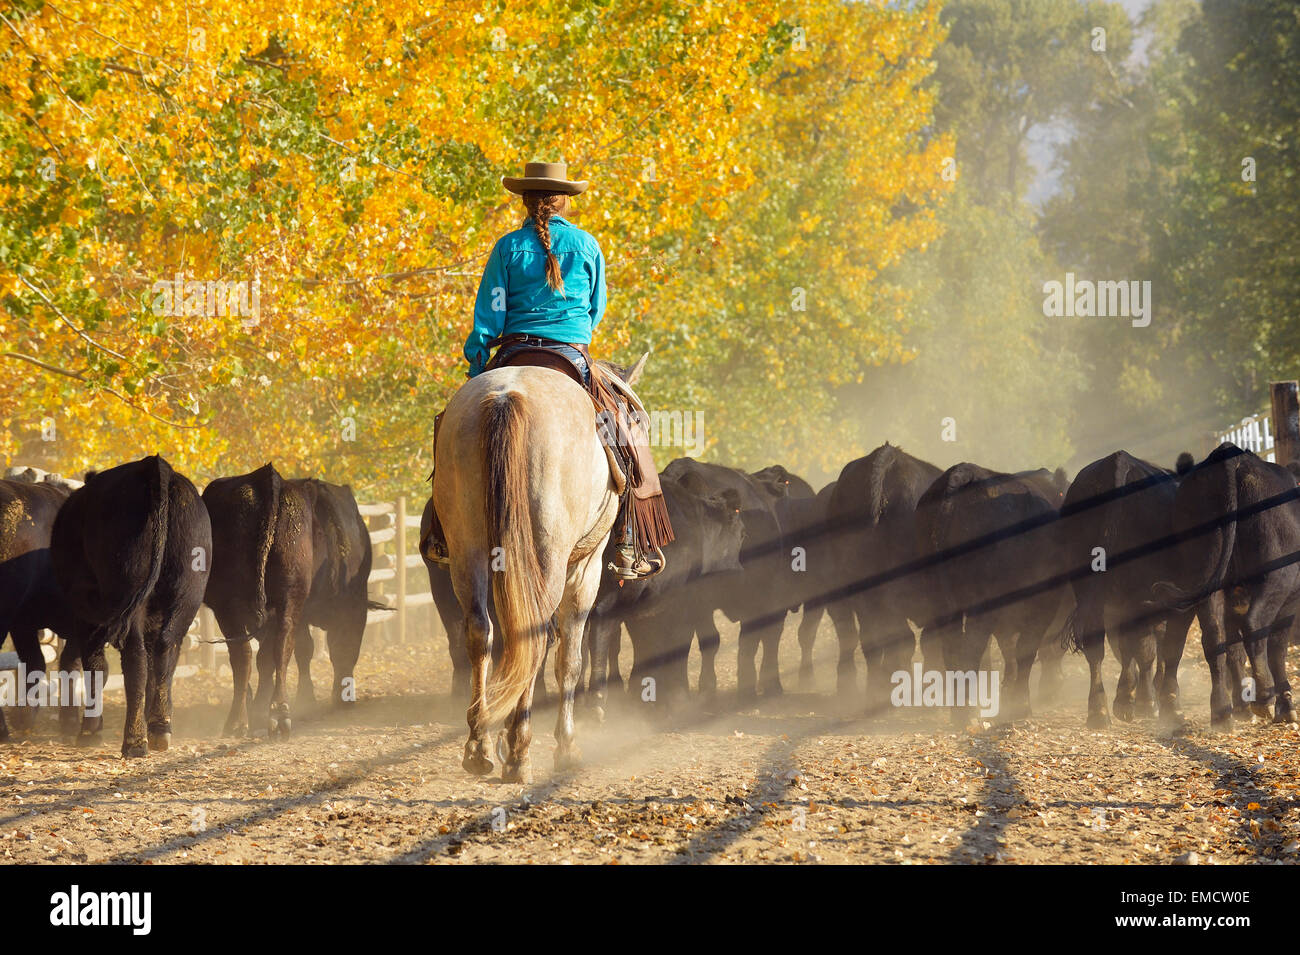 USA, Wyoming, cowgirl cheval d'équitation et d'élevage cattles Photo Stock